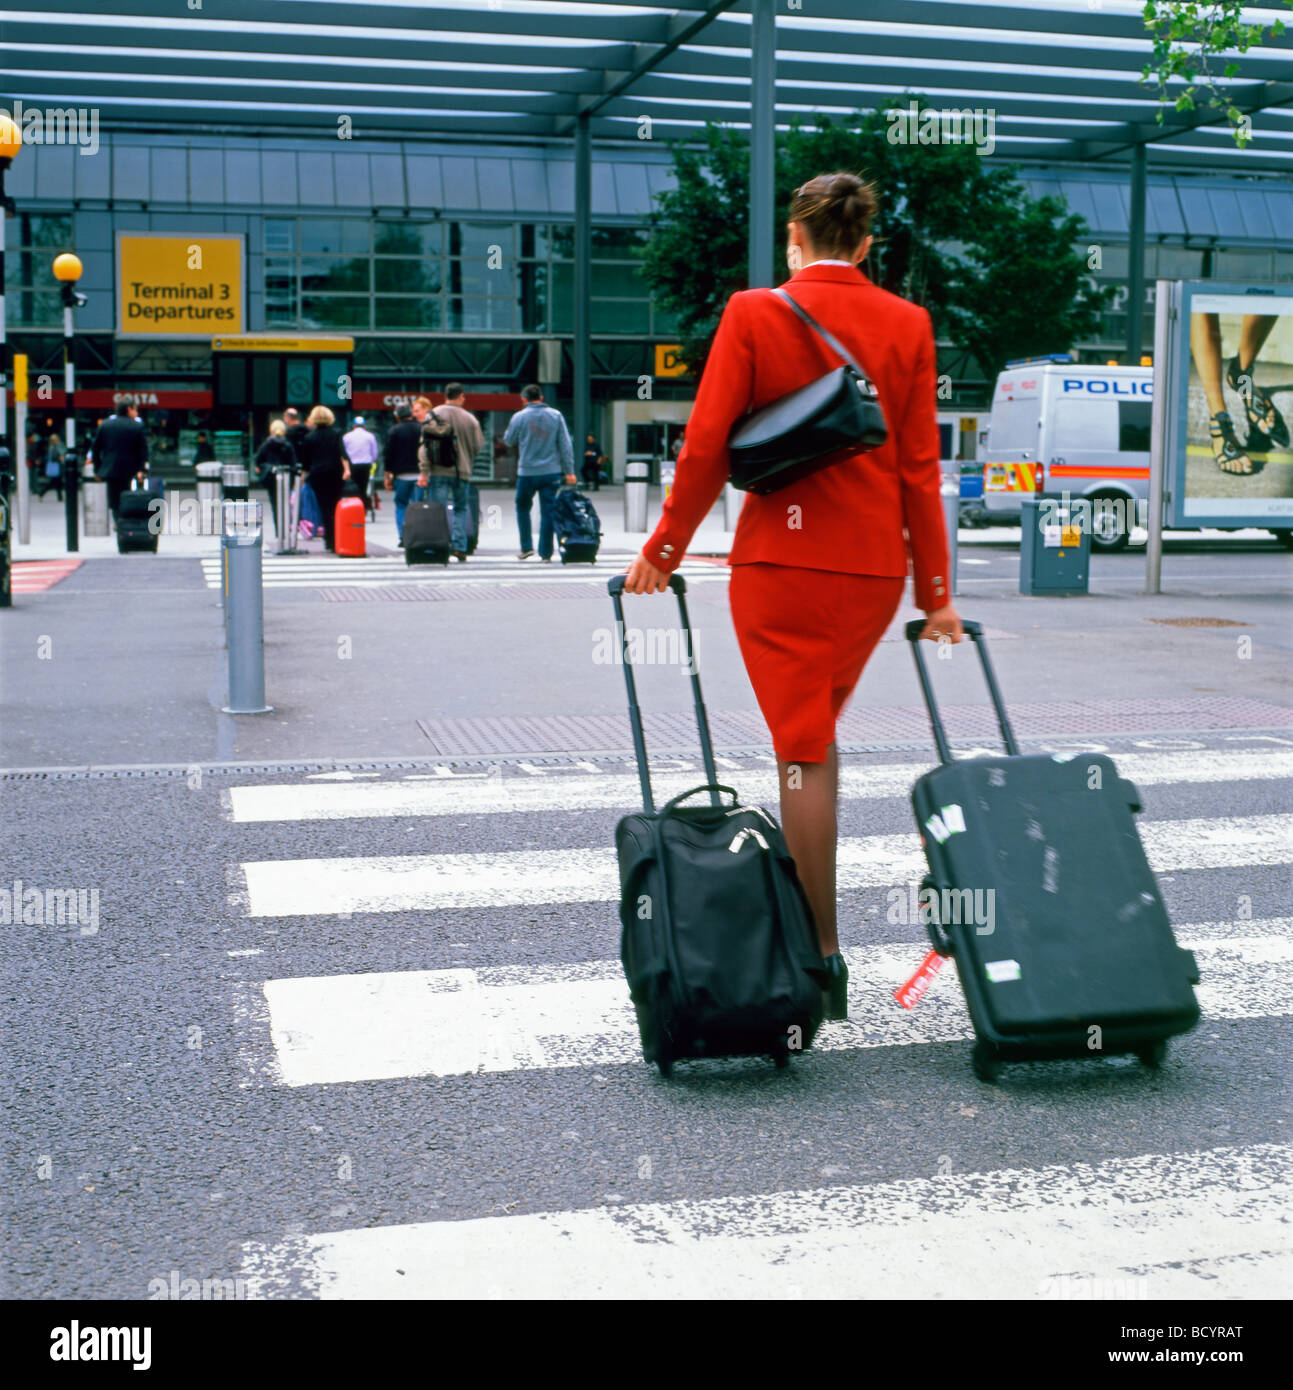 An air hostess with luggage on a crosswalk walking to Terminal 3 entrance Heathrow airport London England  KATHY - Stock Image